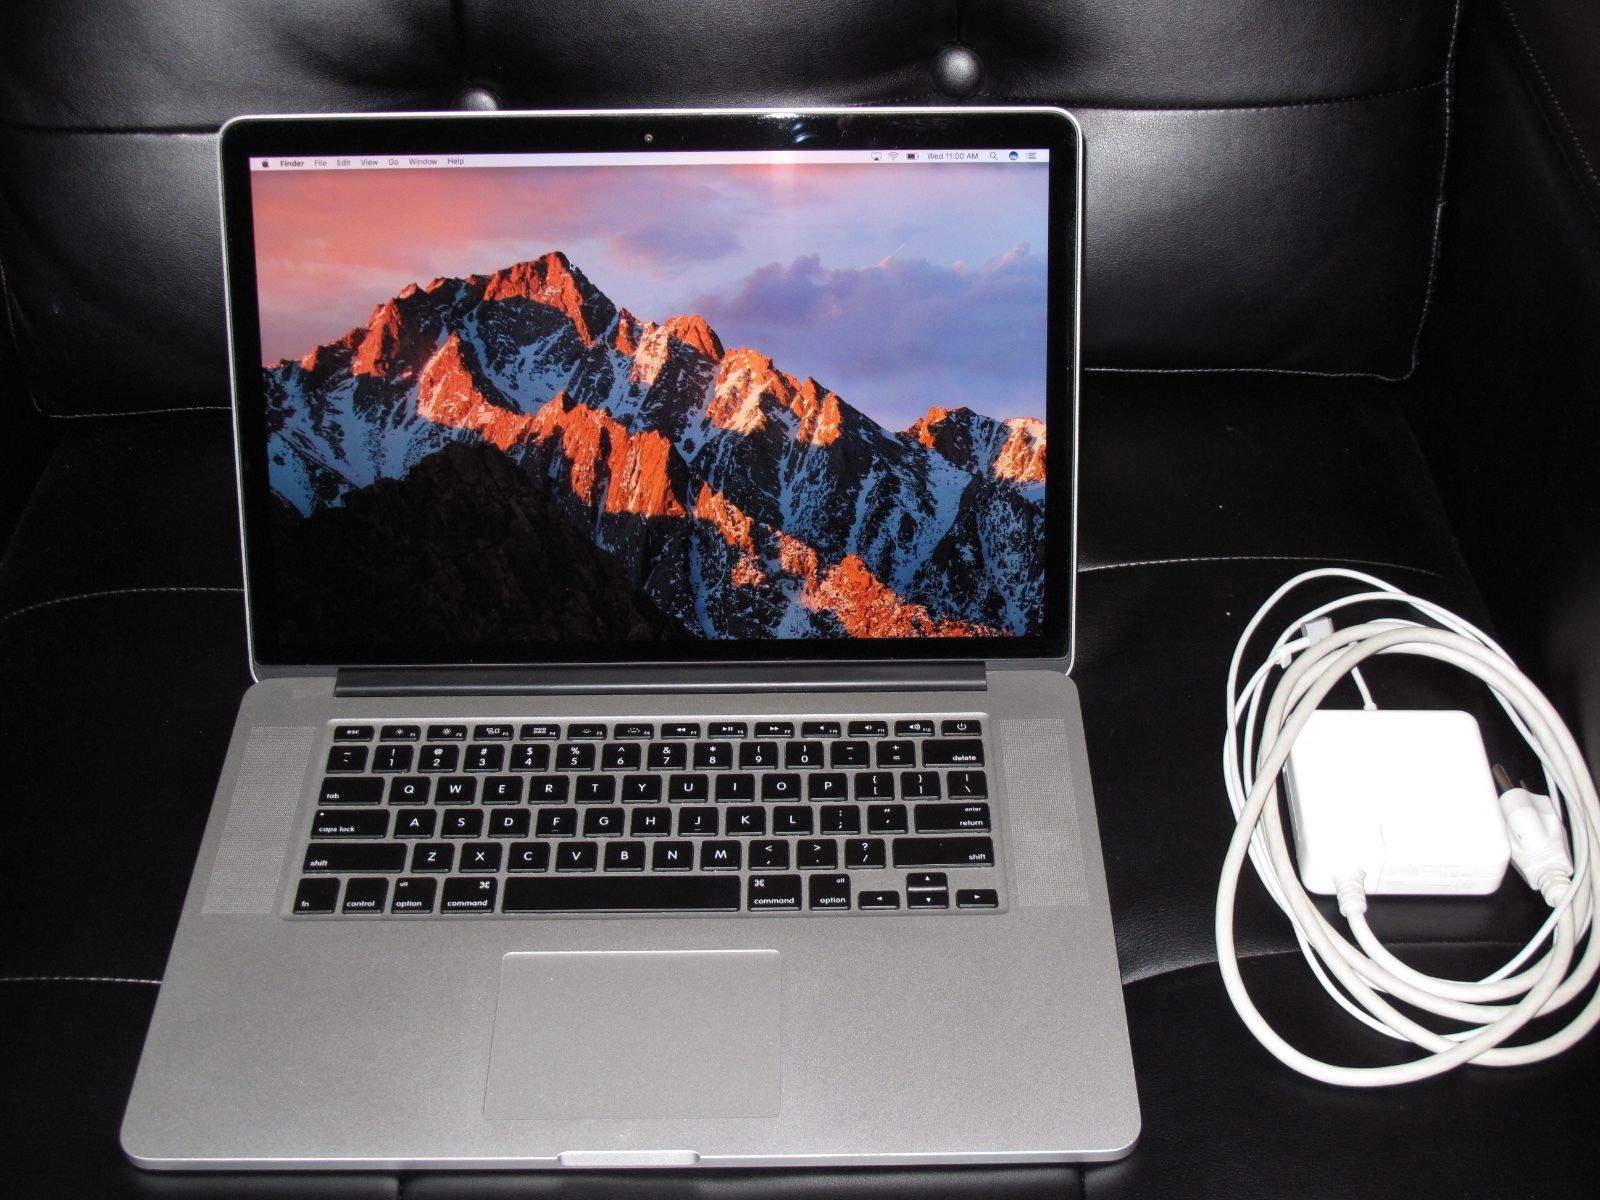 MACBOOK RETINA BTO/CTO A1398 Core i7 2.3GHz